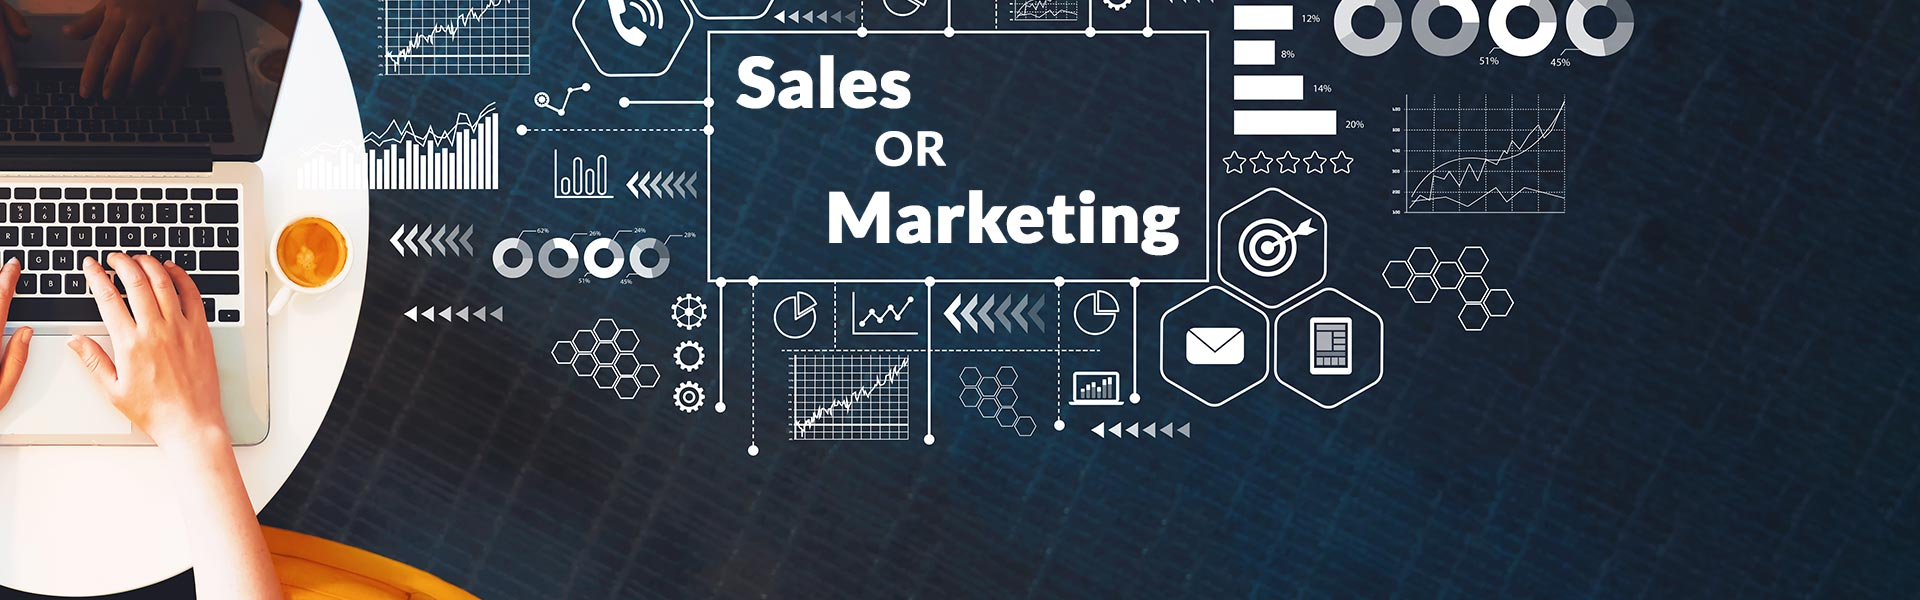 sales or marketing graphic